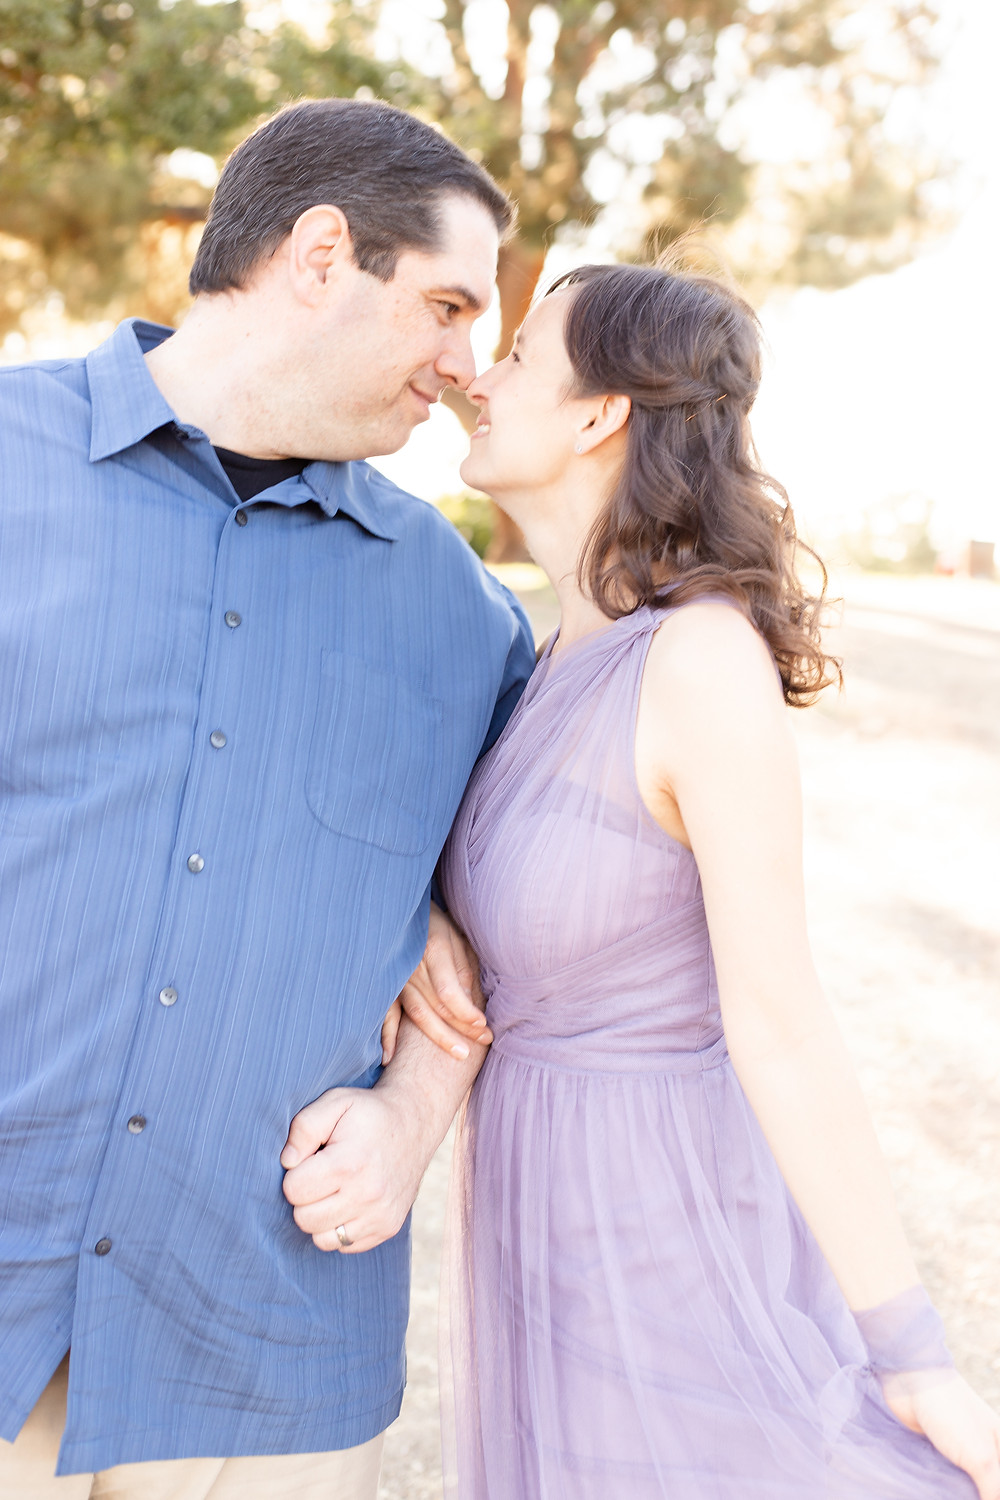 A man and woman in Woodward Park in Fresno, California lean towards each other and touch noses for a couples lifestyle portrait session..